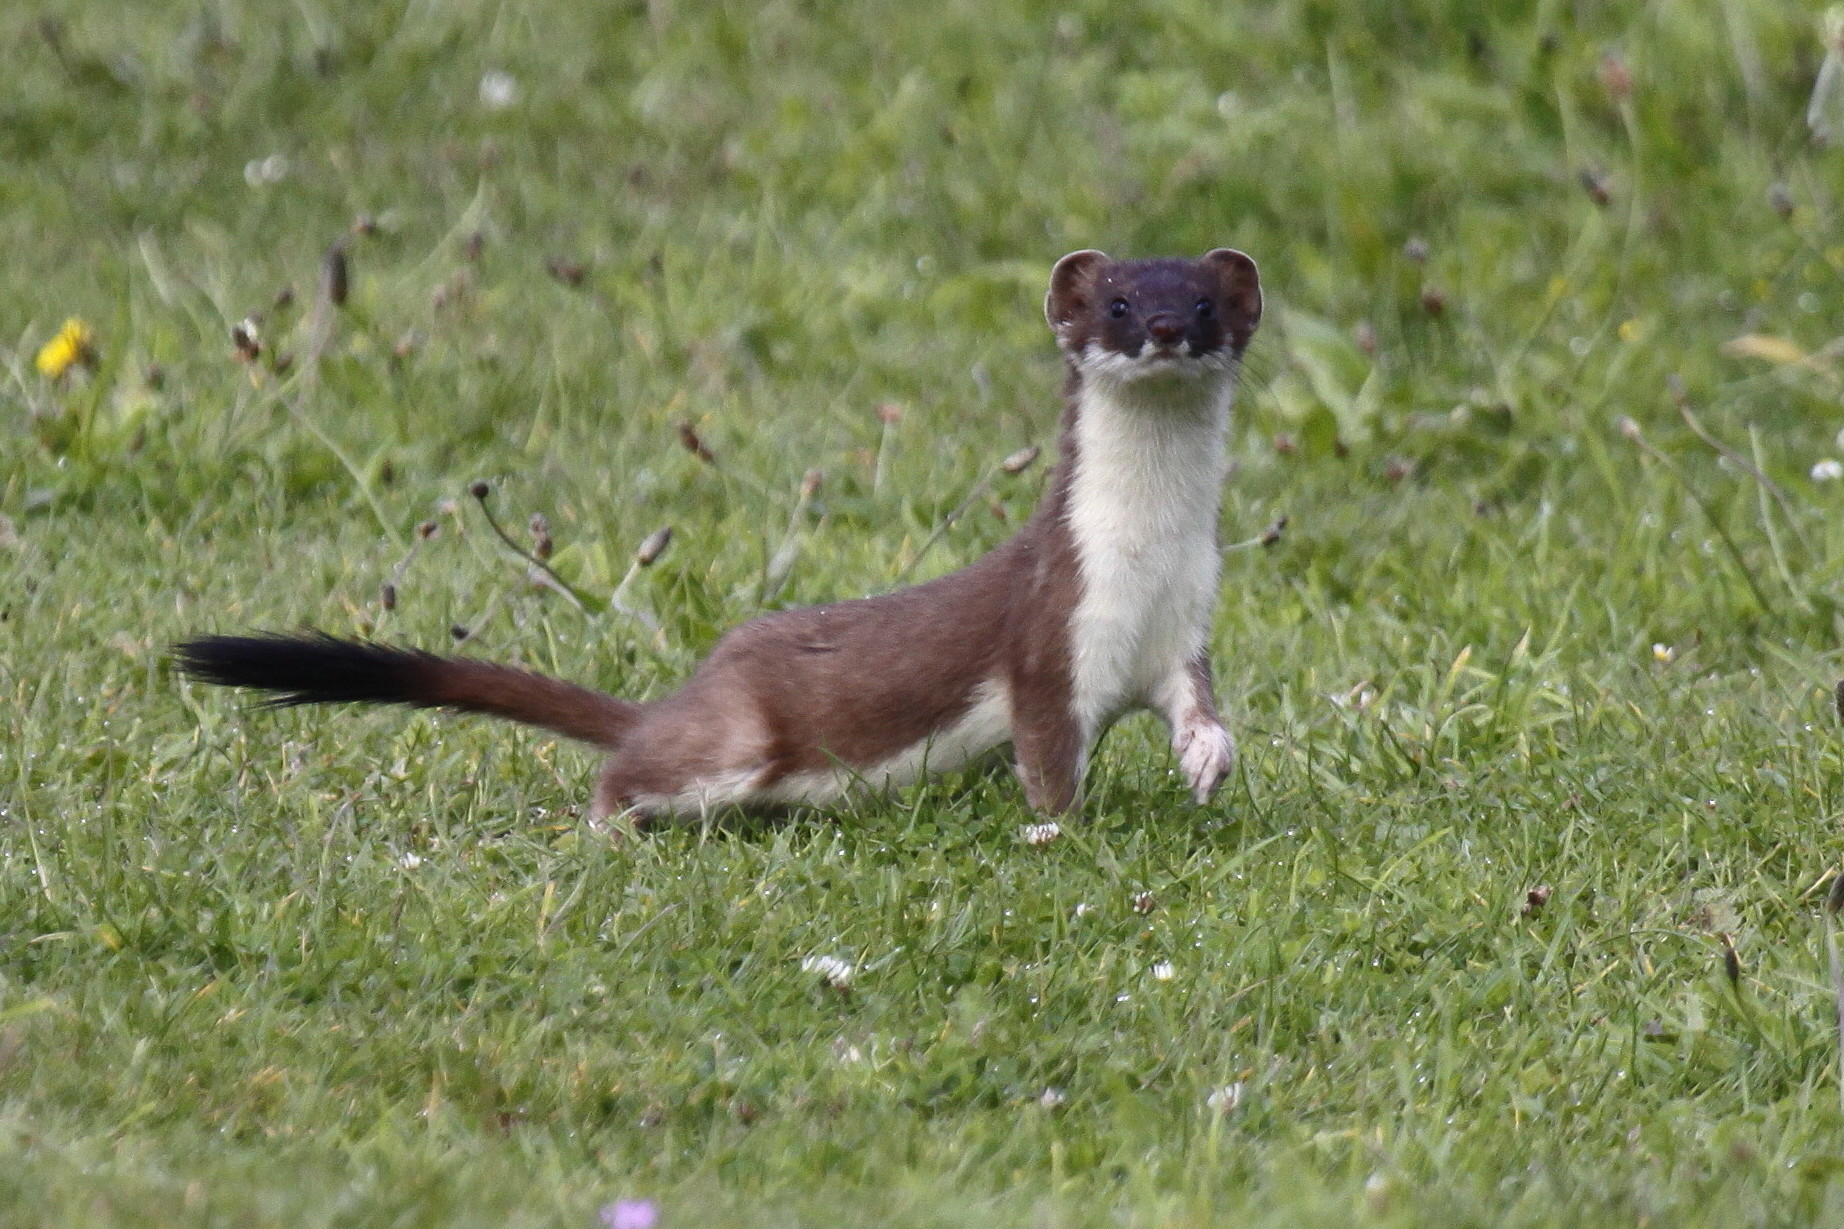 one man helicopters with Stoats on Mystery People Good Drawing Arent Revealed additionally Watch together with Scottsdale Helicopter Tours Arizona as well Stoats in addition Futuristic Self Balancing Helicopter Oblivion Concept.